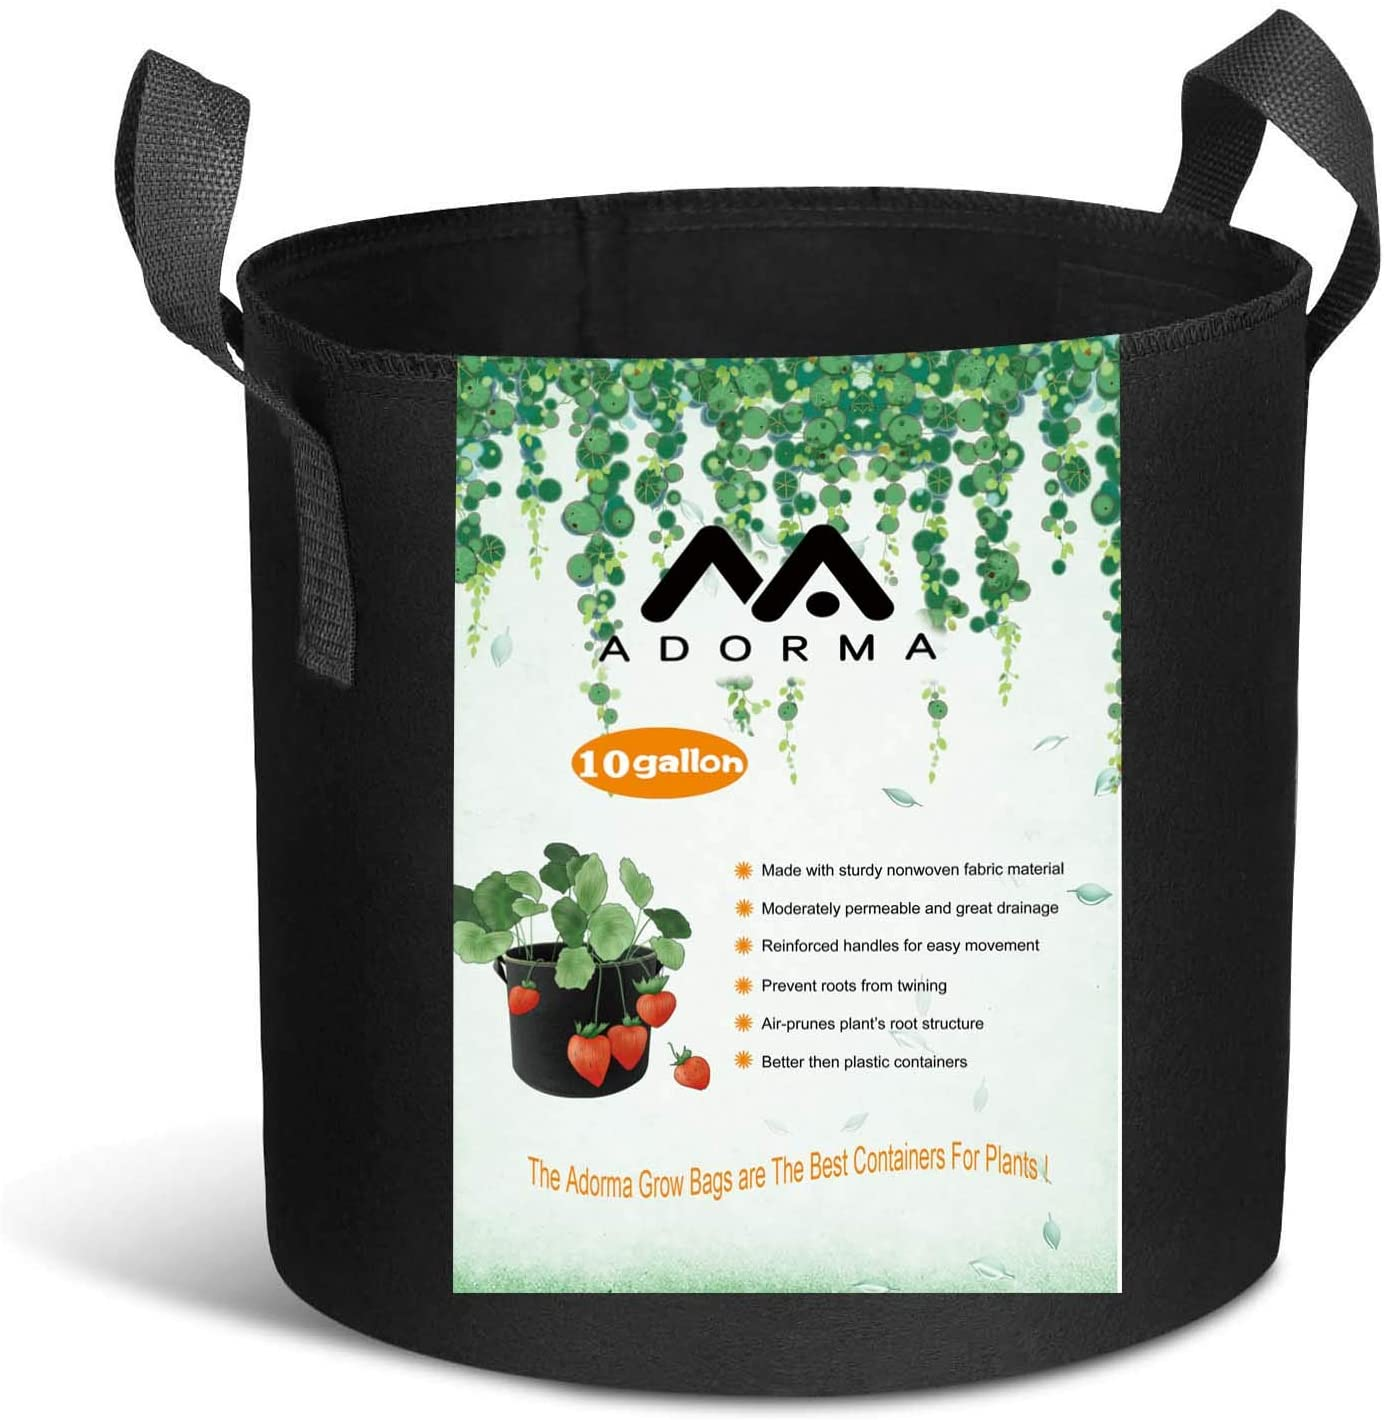 Adorma 10 Packs 10 Gallon Grow Bags, Heavy Duty 300G Thickened Nonwoven Fabric Plant Pots with Handle